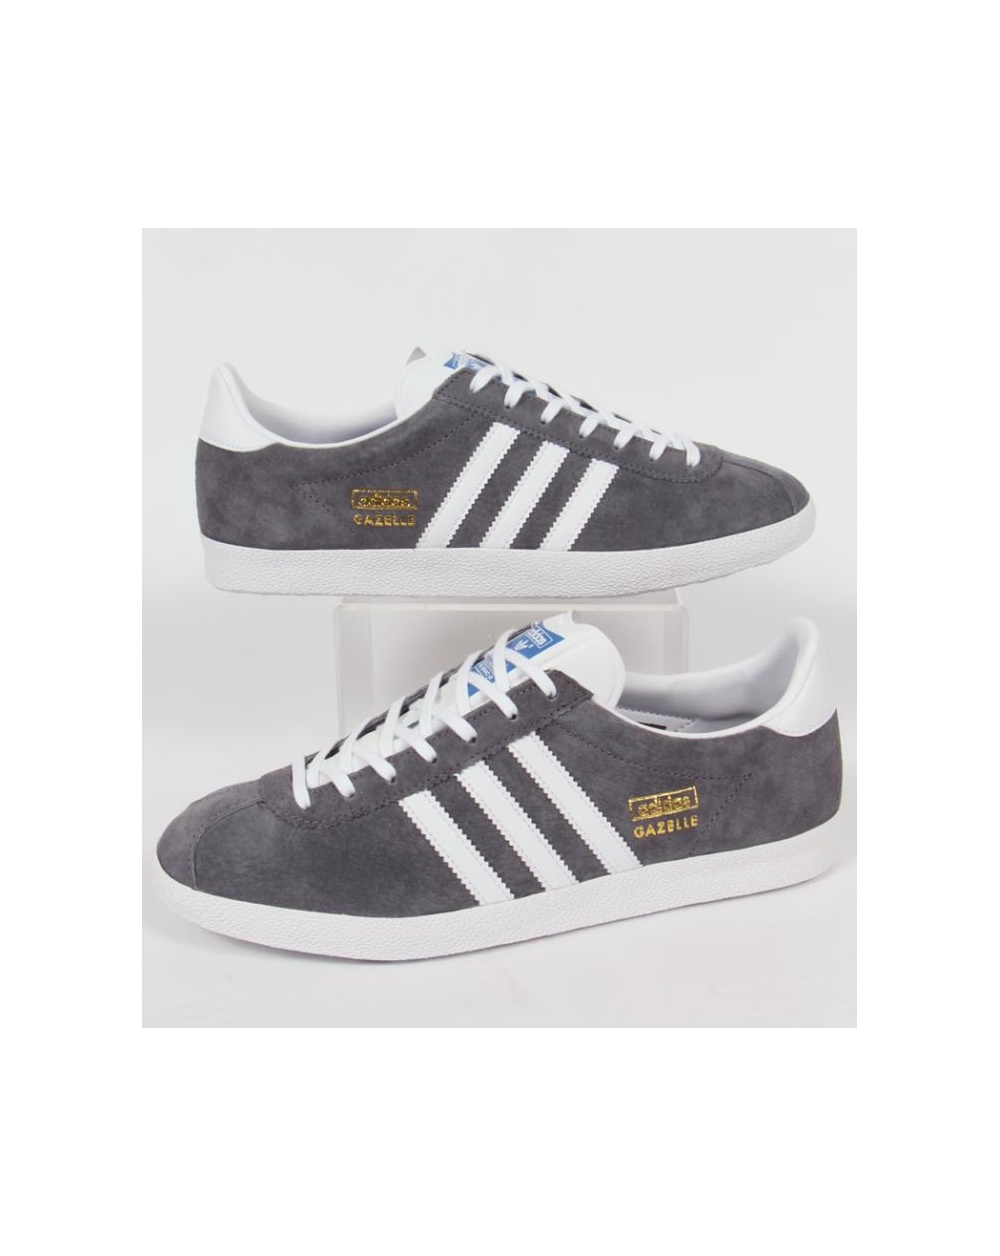 adidas Trainers Adidas Gazelle Og Trainers Sharp Grey White d4570d10c